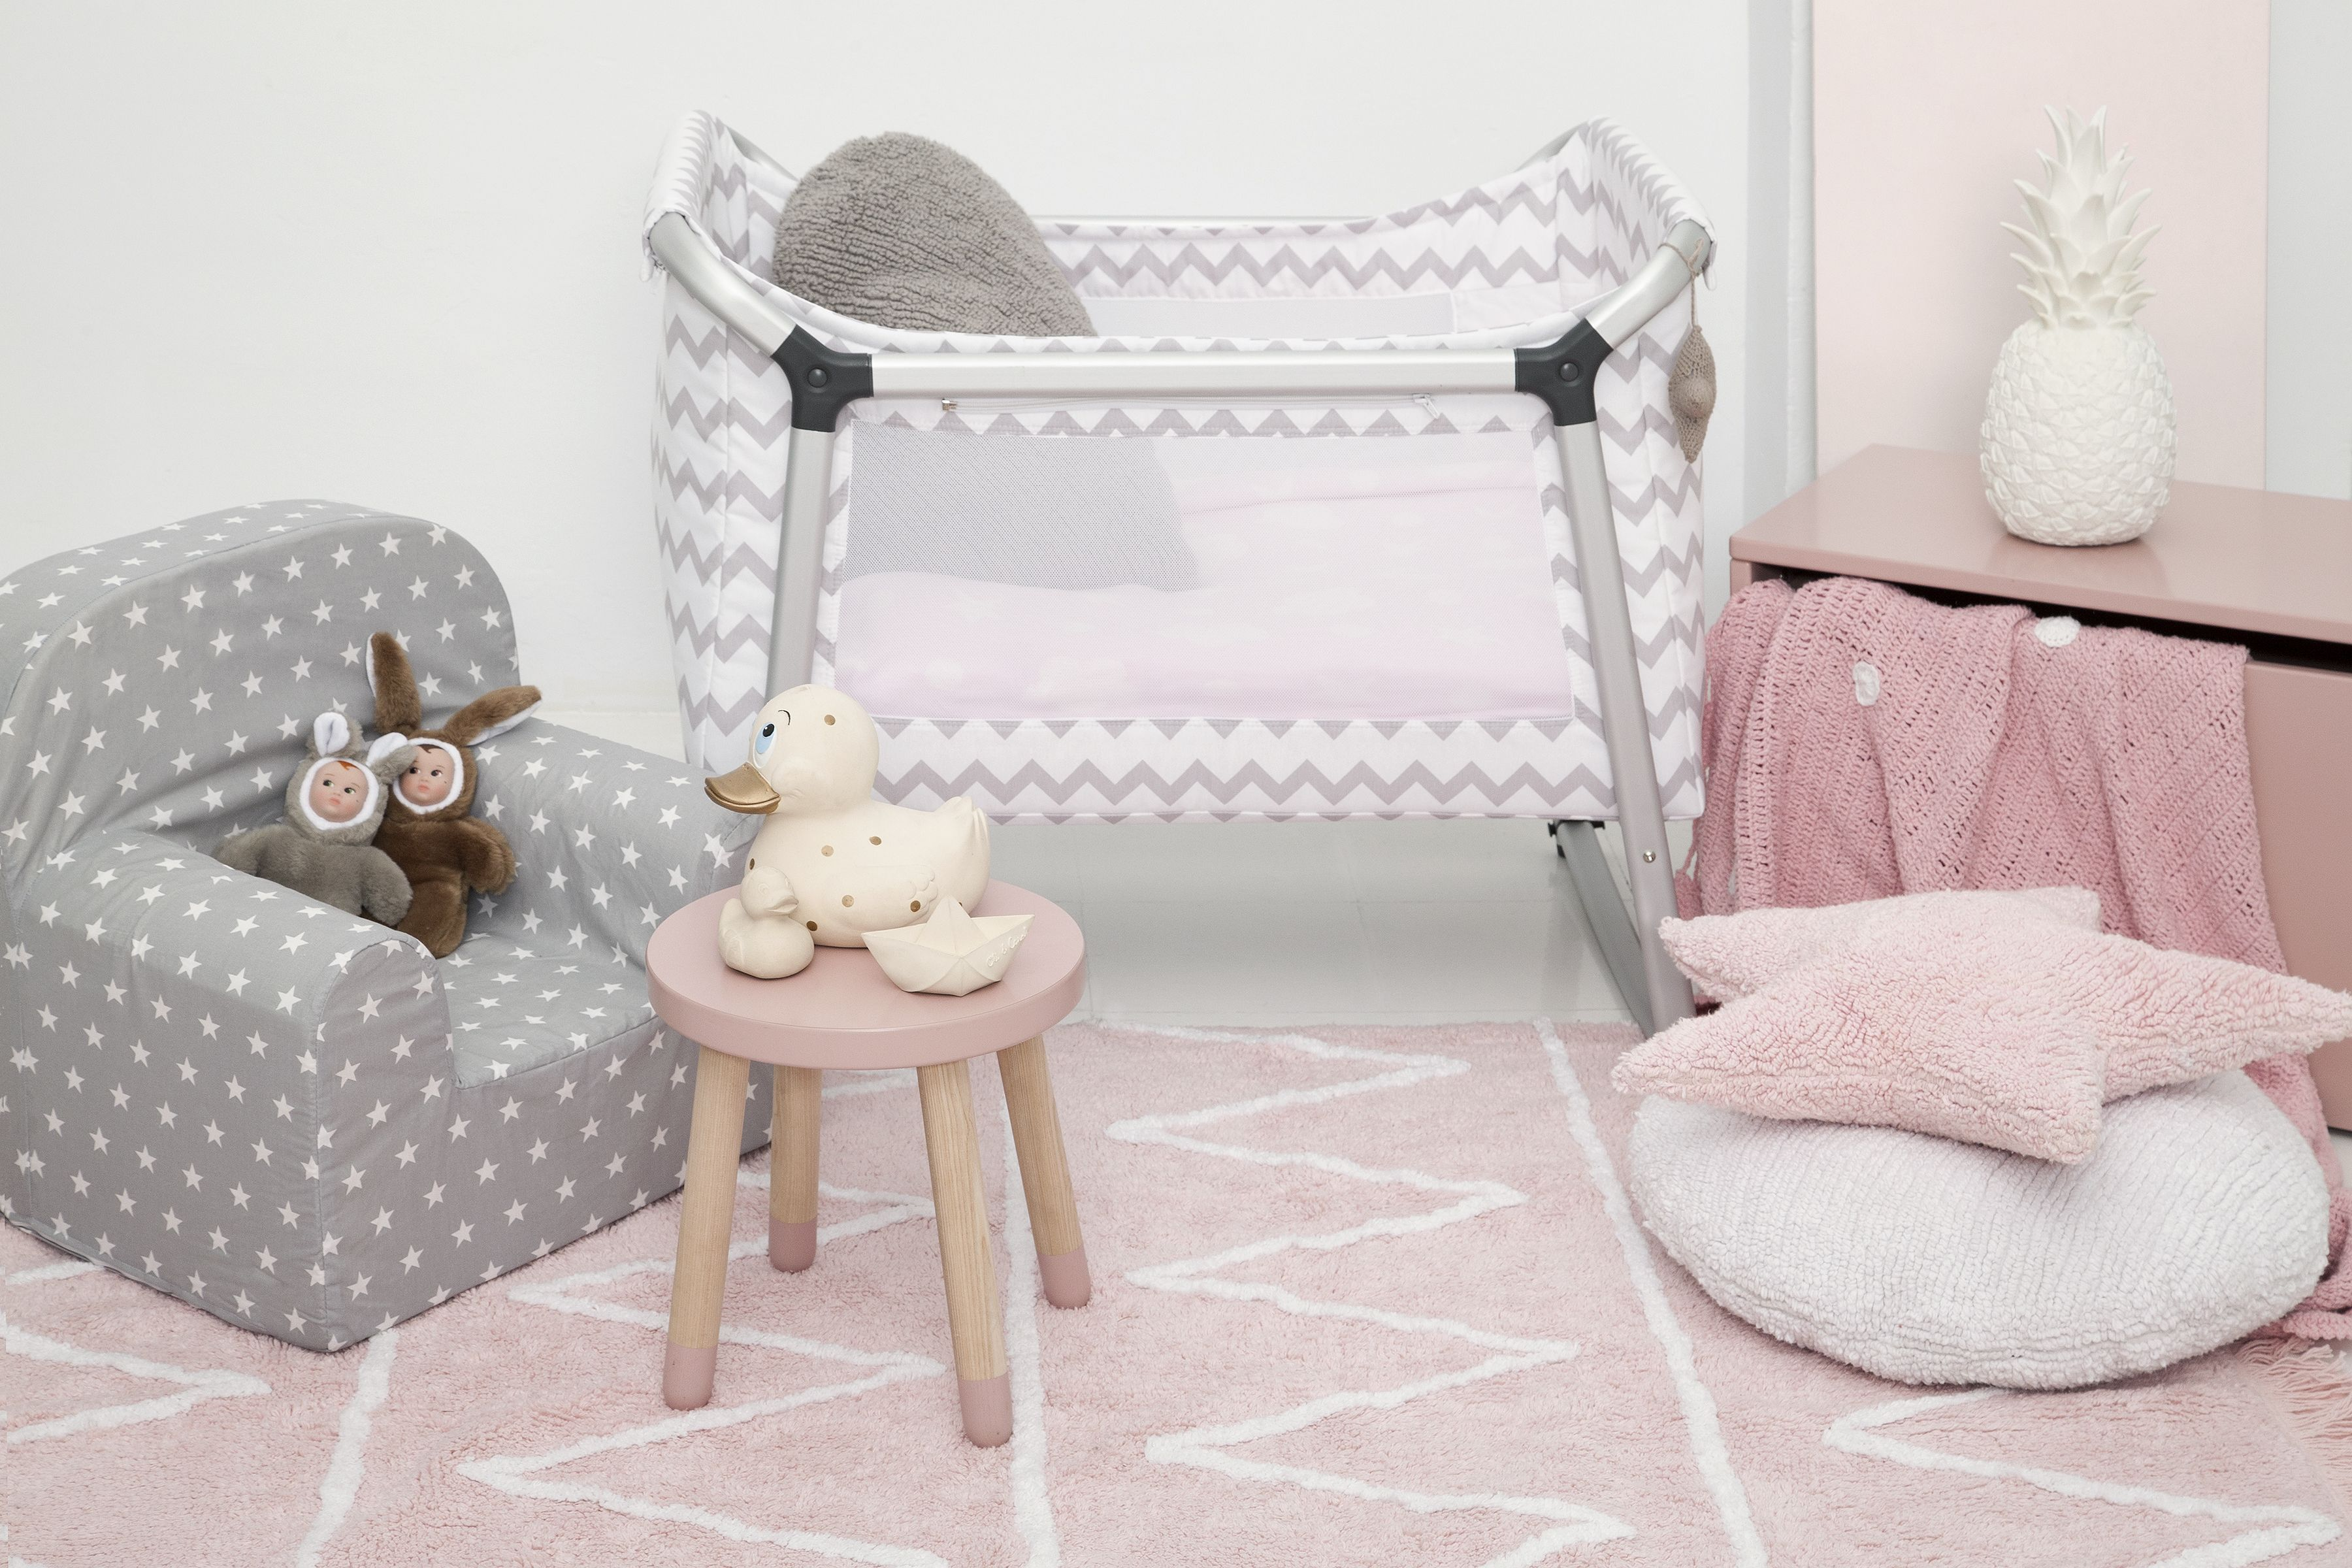 Baby room decor│Eco-friendly│Home Deco│#washablerugs│#lorenacanals│#kids│#nursery. Find more at: http://lorenacanals.com/